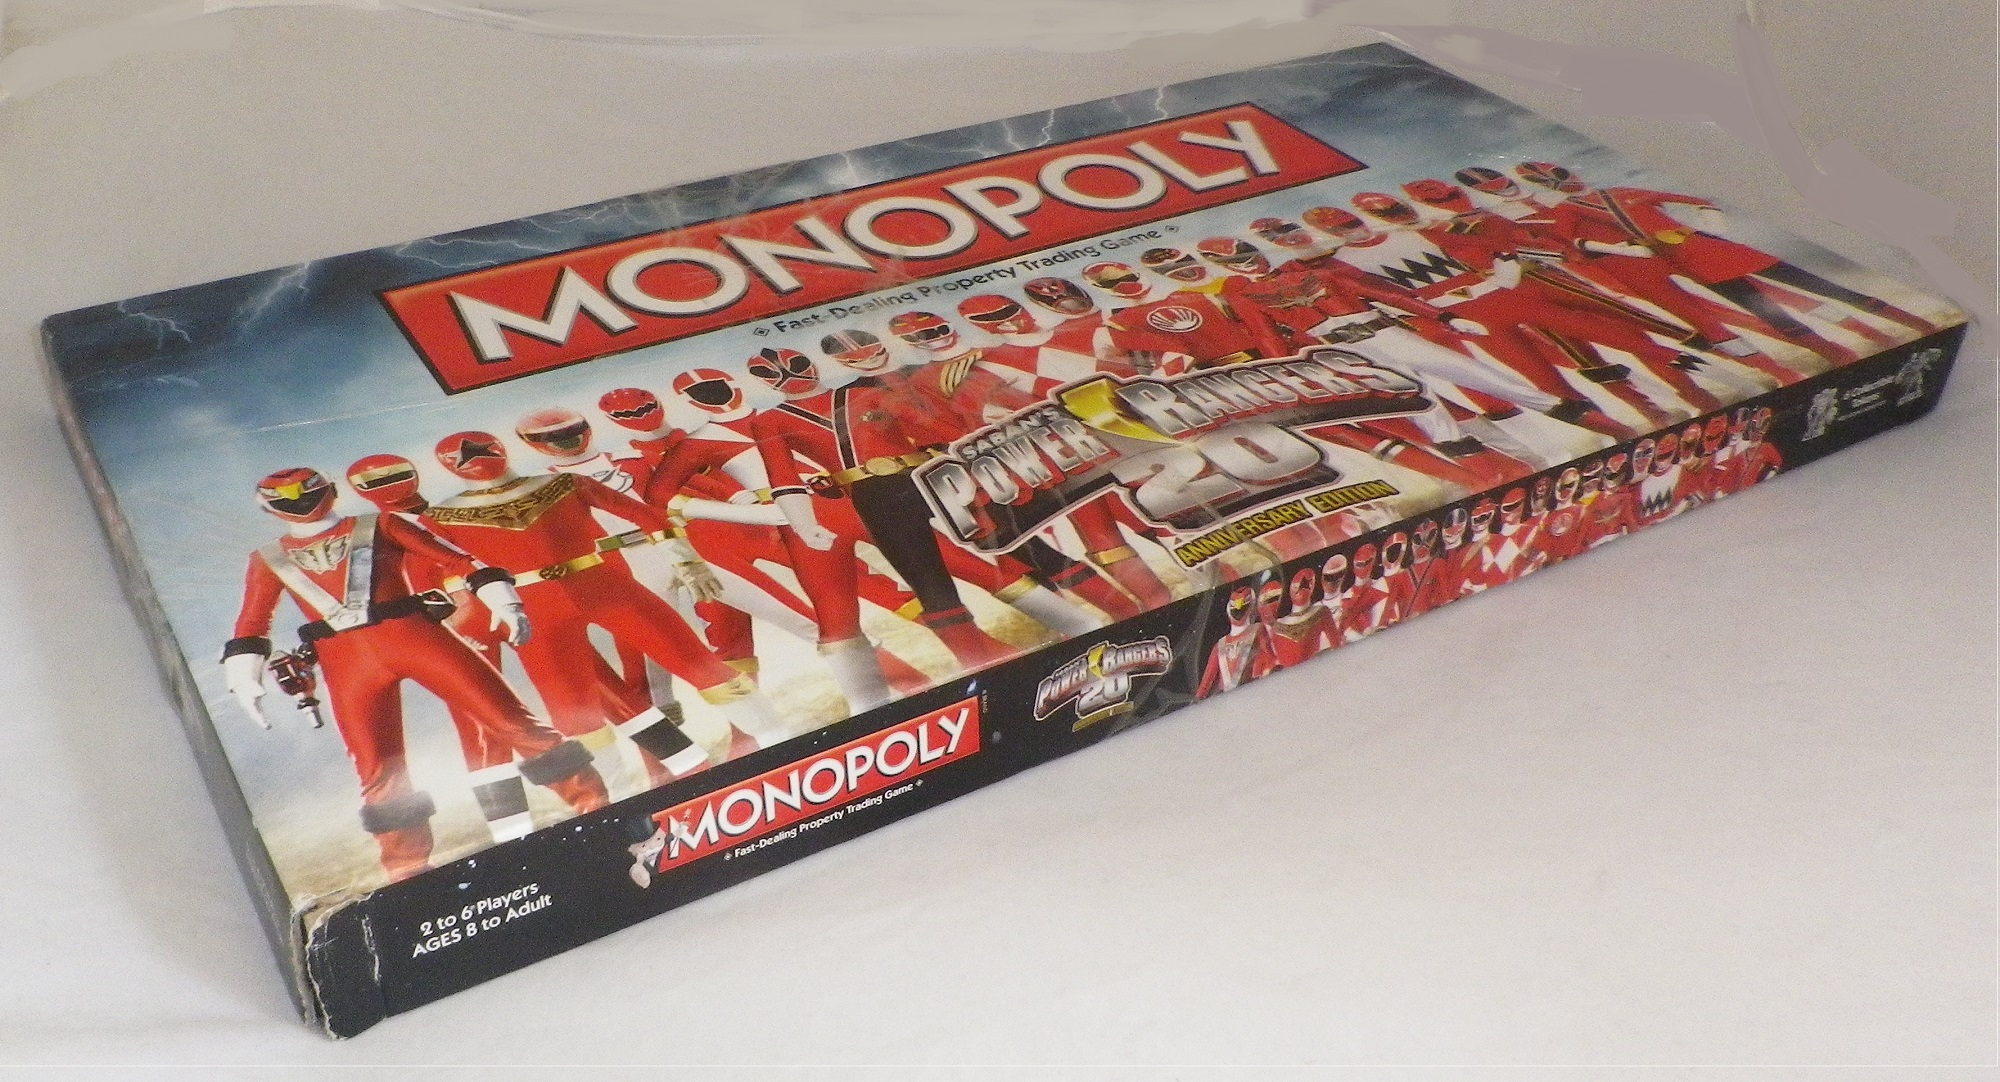 Power Rangers 20th Anniversary Edition Monopoly Board Game